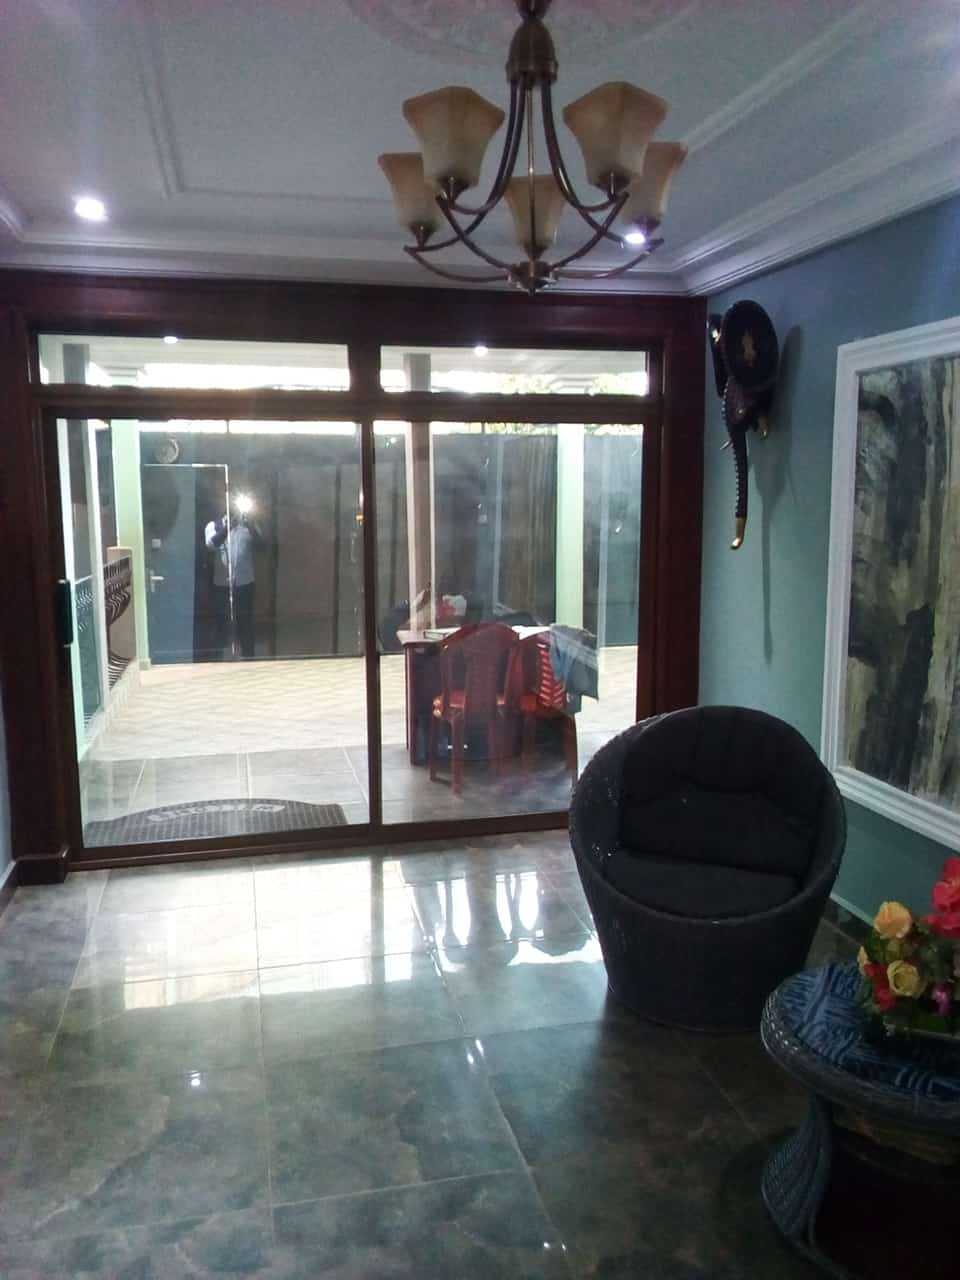 Apartment to rent - Yaoundé, Bastos, vers banque mondiale - 1 living room(s), 1 bedroom(s), 1 bathroom(s) - 1 200 000 FCFA / month